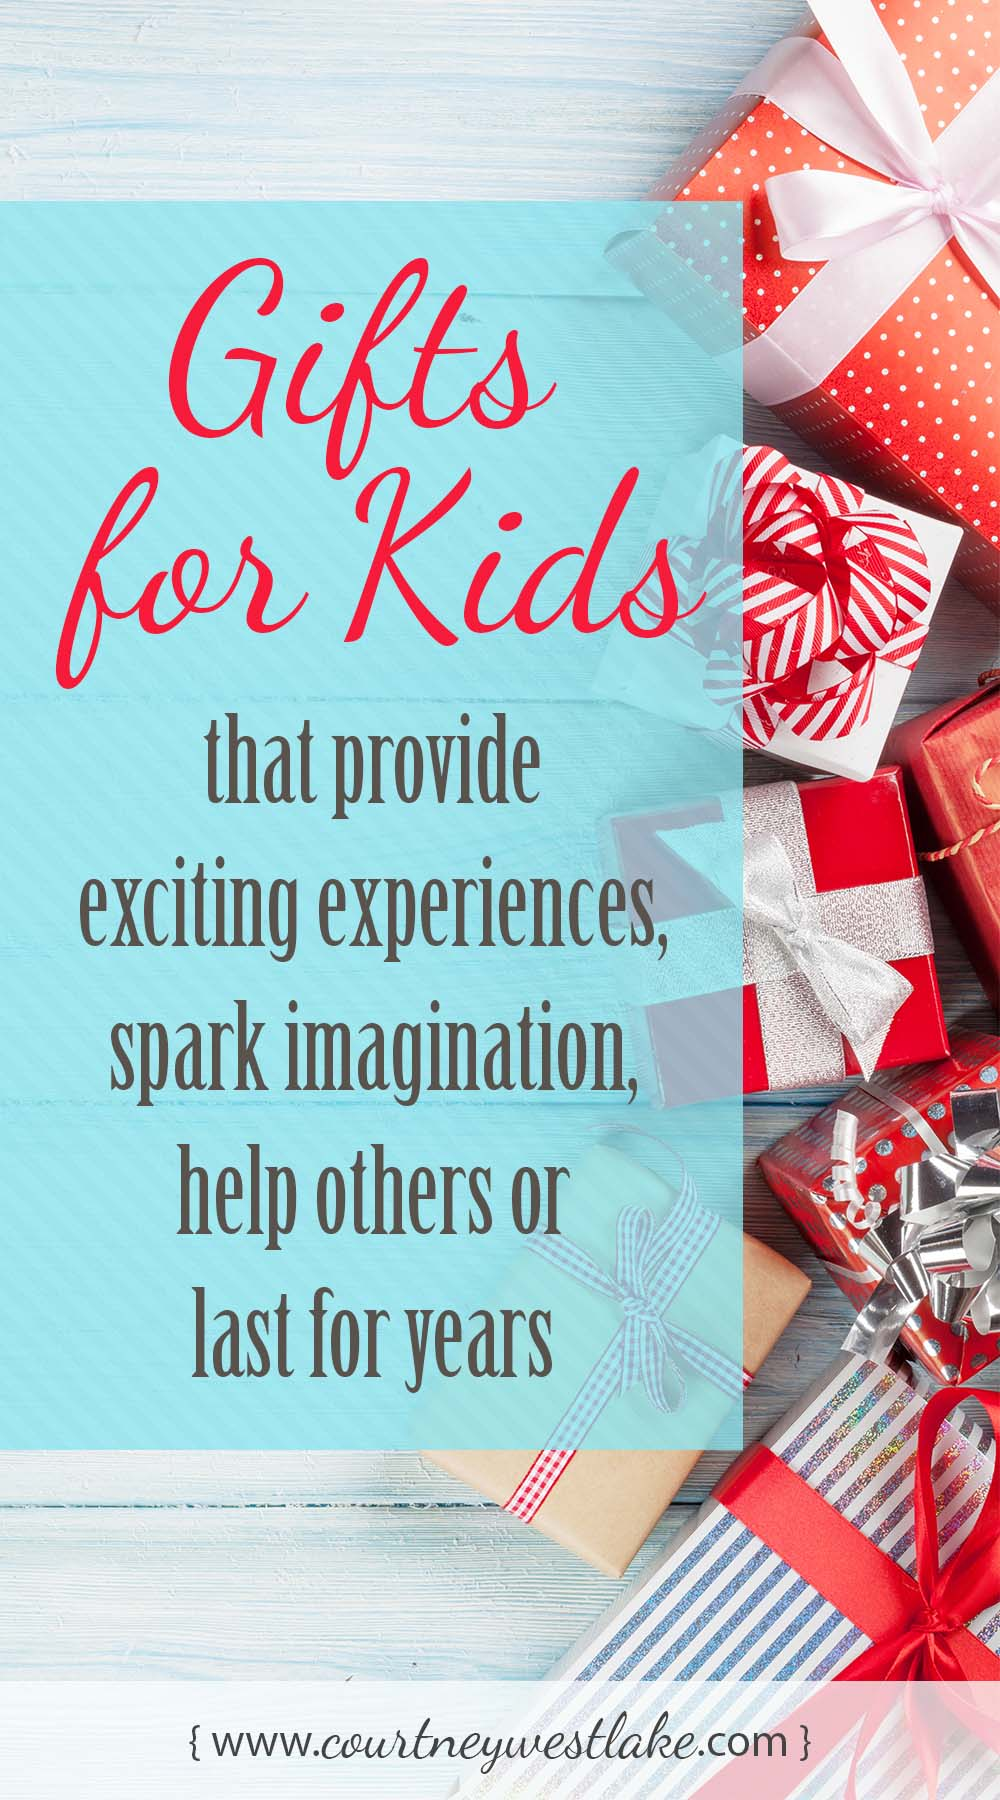 Gifts for kids that provide exciting experiences, spark imagination, help others or last for years - What a FANTASTIC list of ideas!! The best presents for kids!